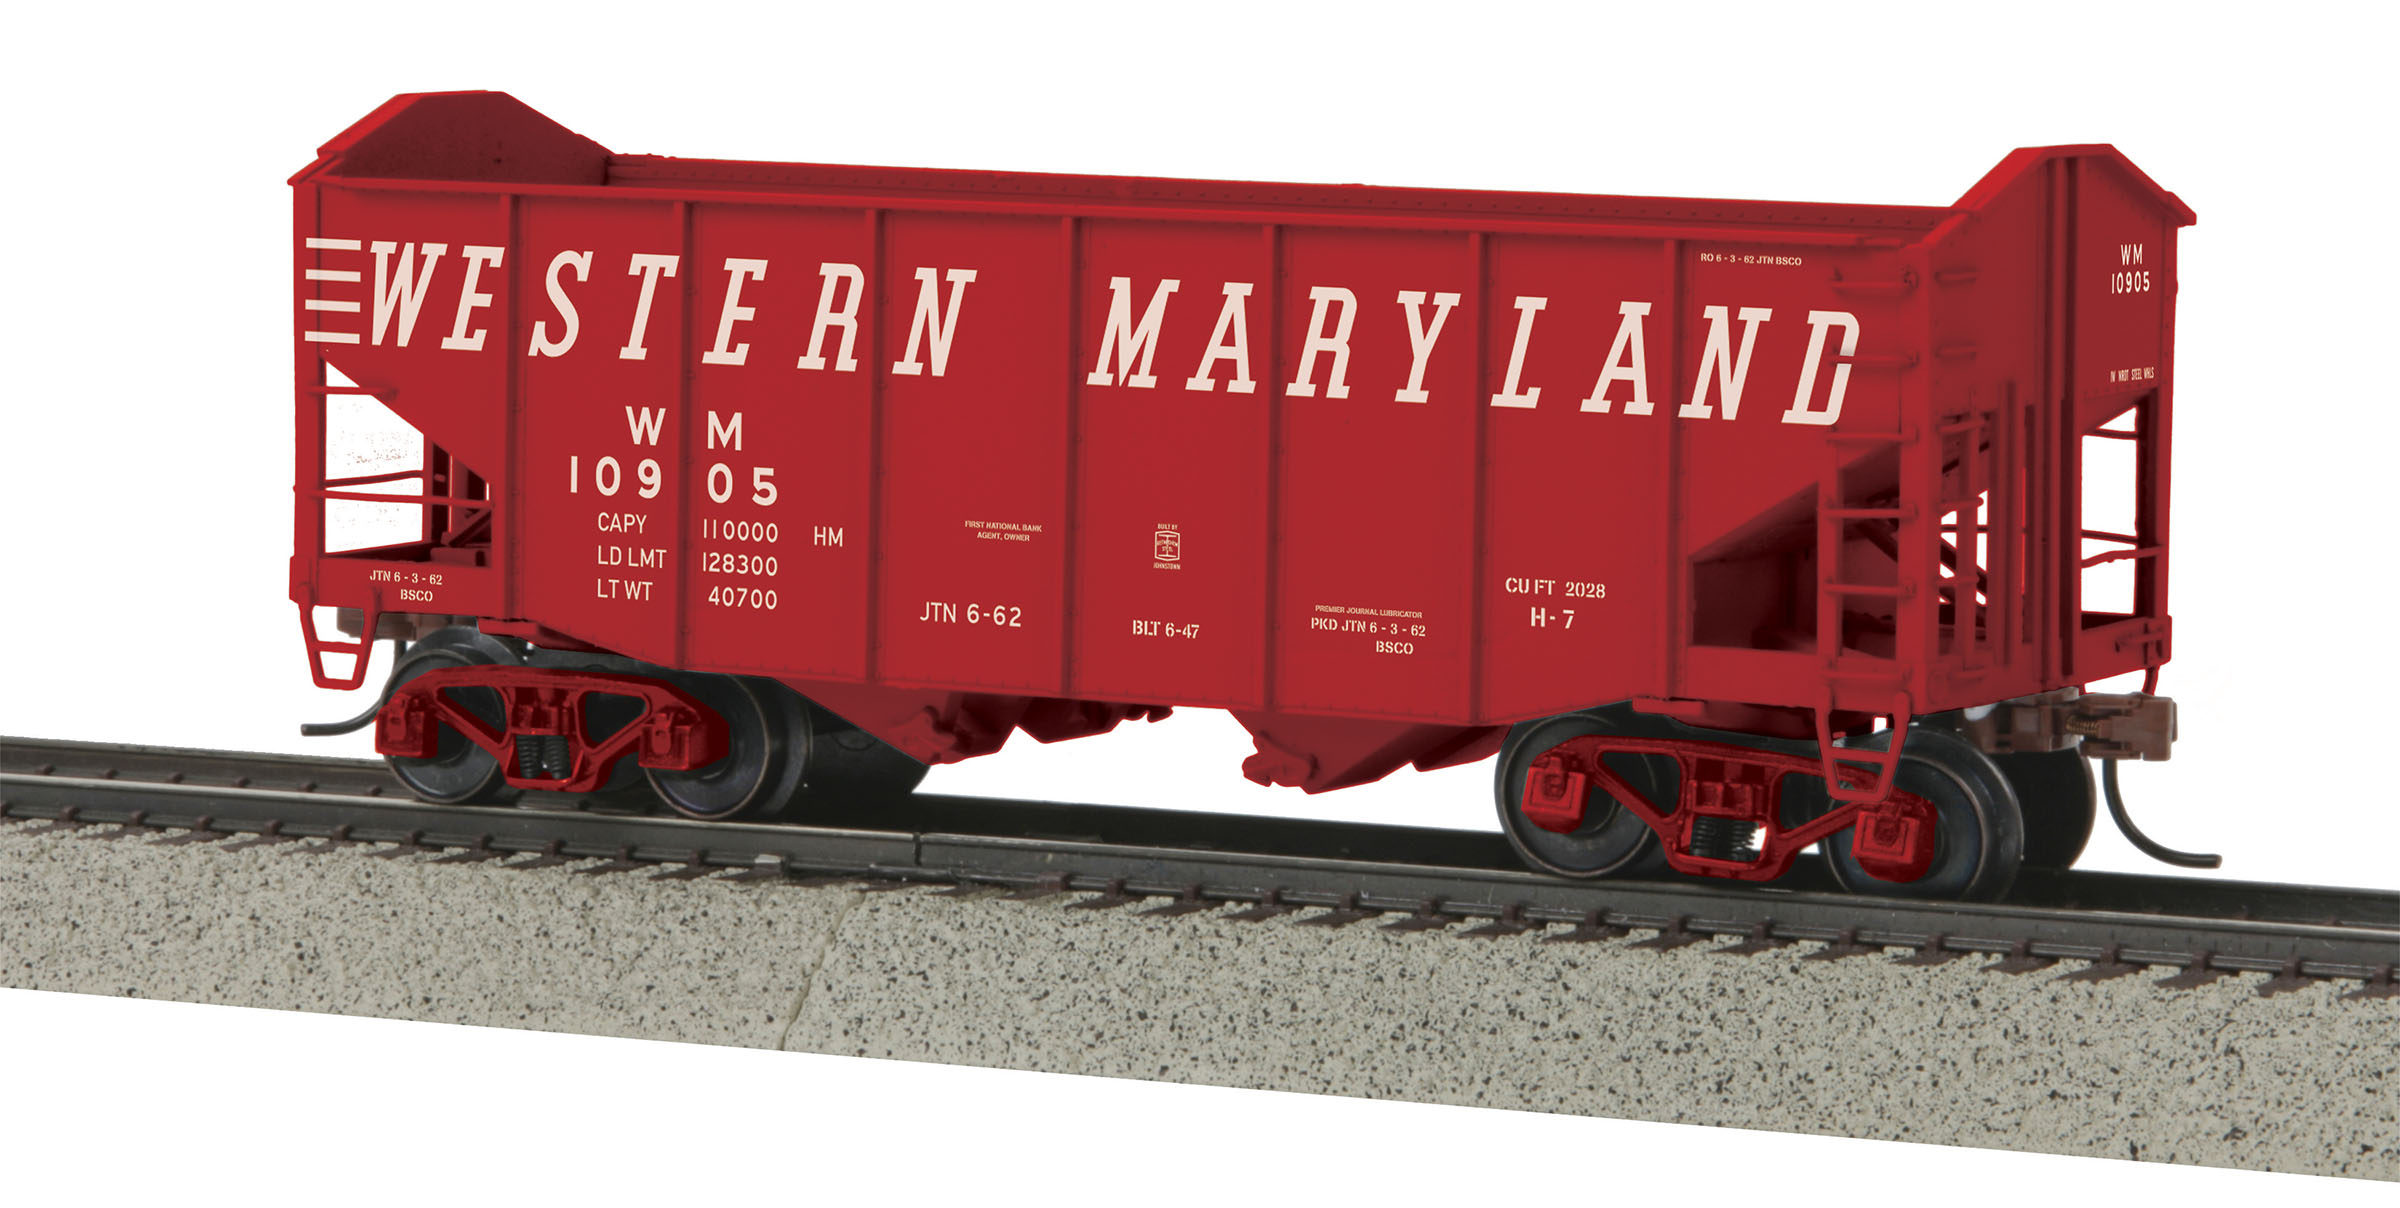 MTH 3575084 2-Bay Fish Belly Hopper Car Scale Wheels WM #10905